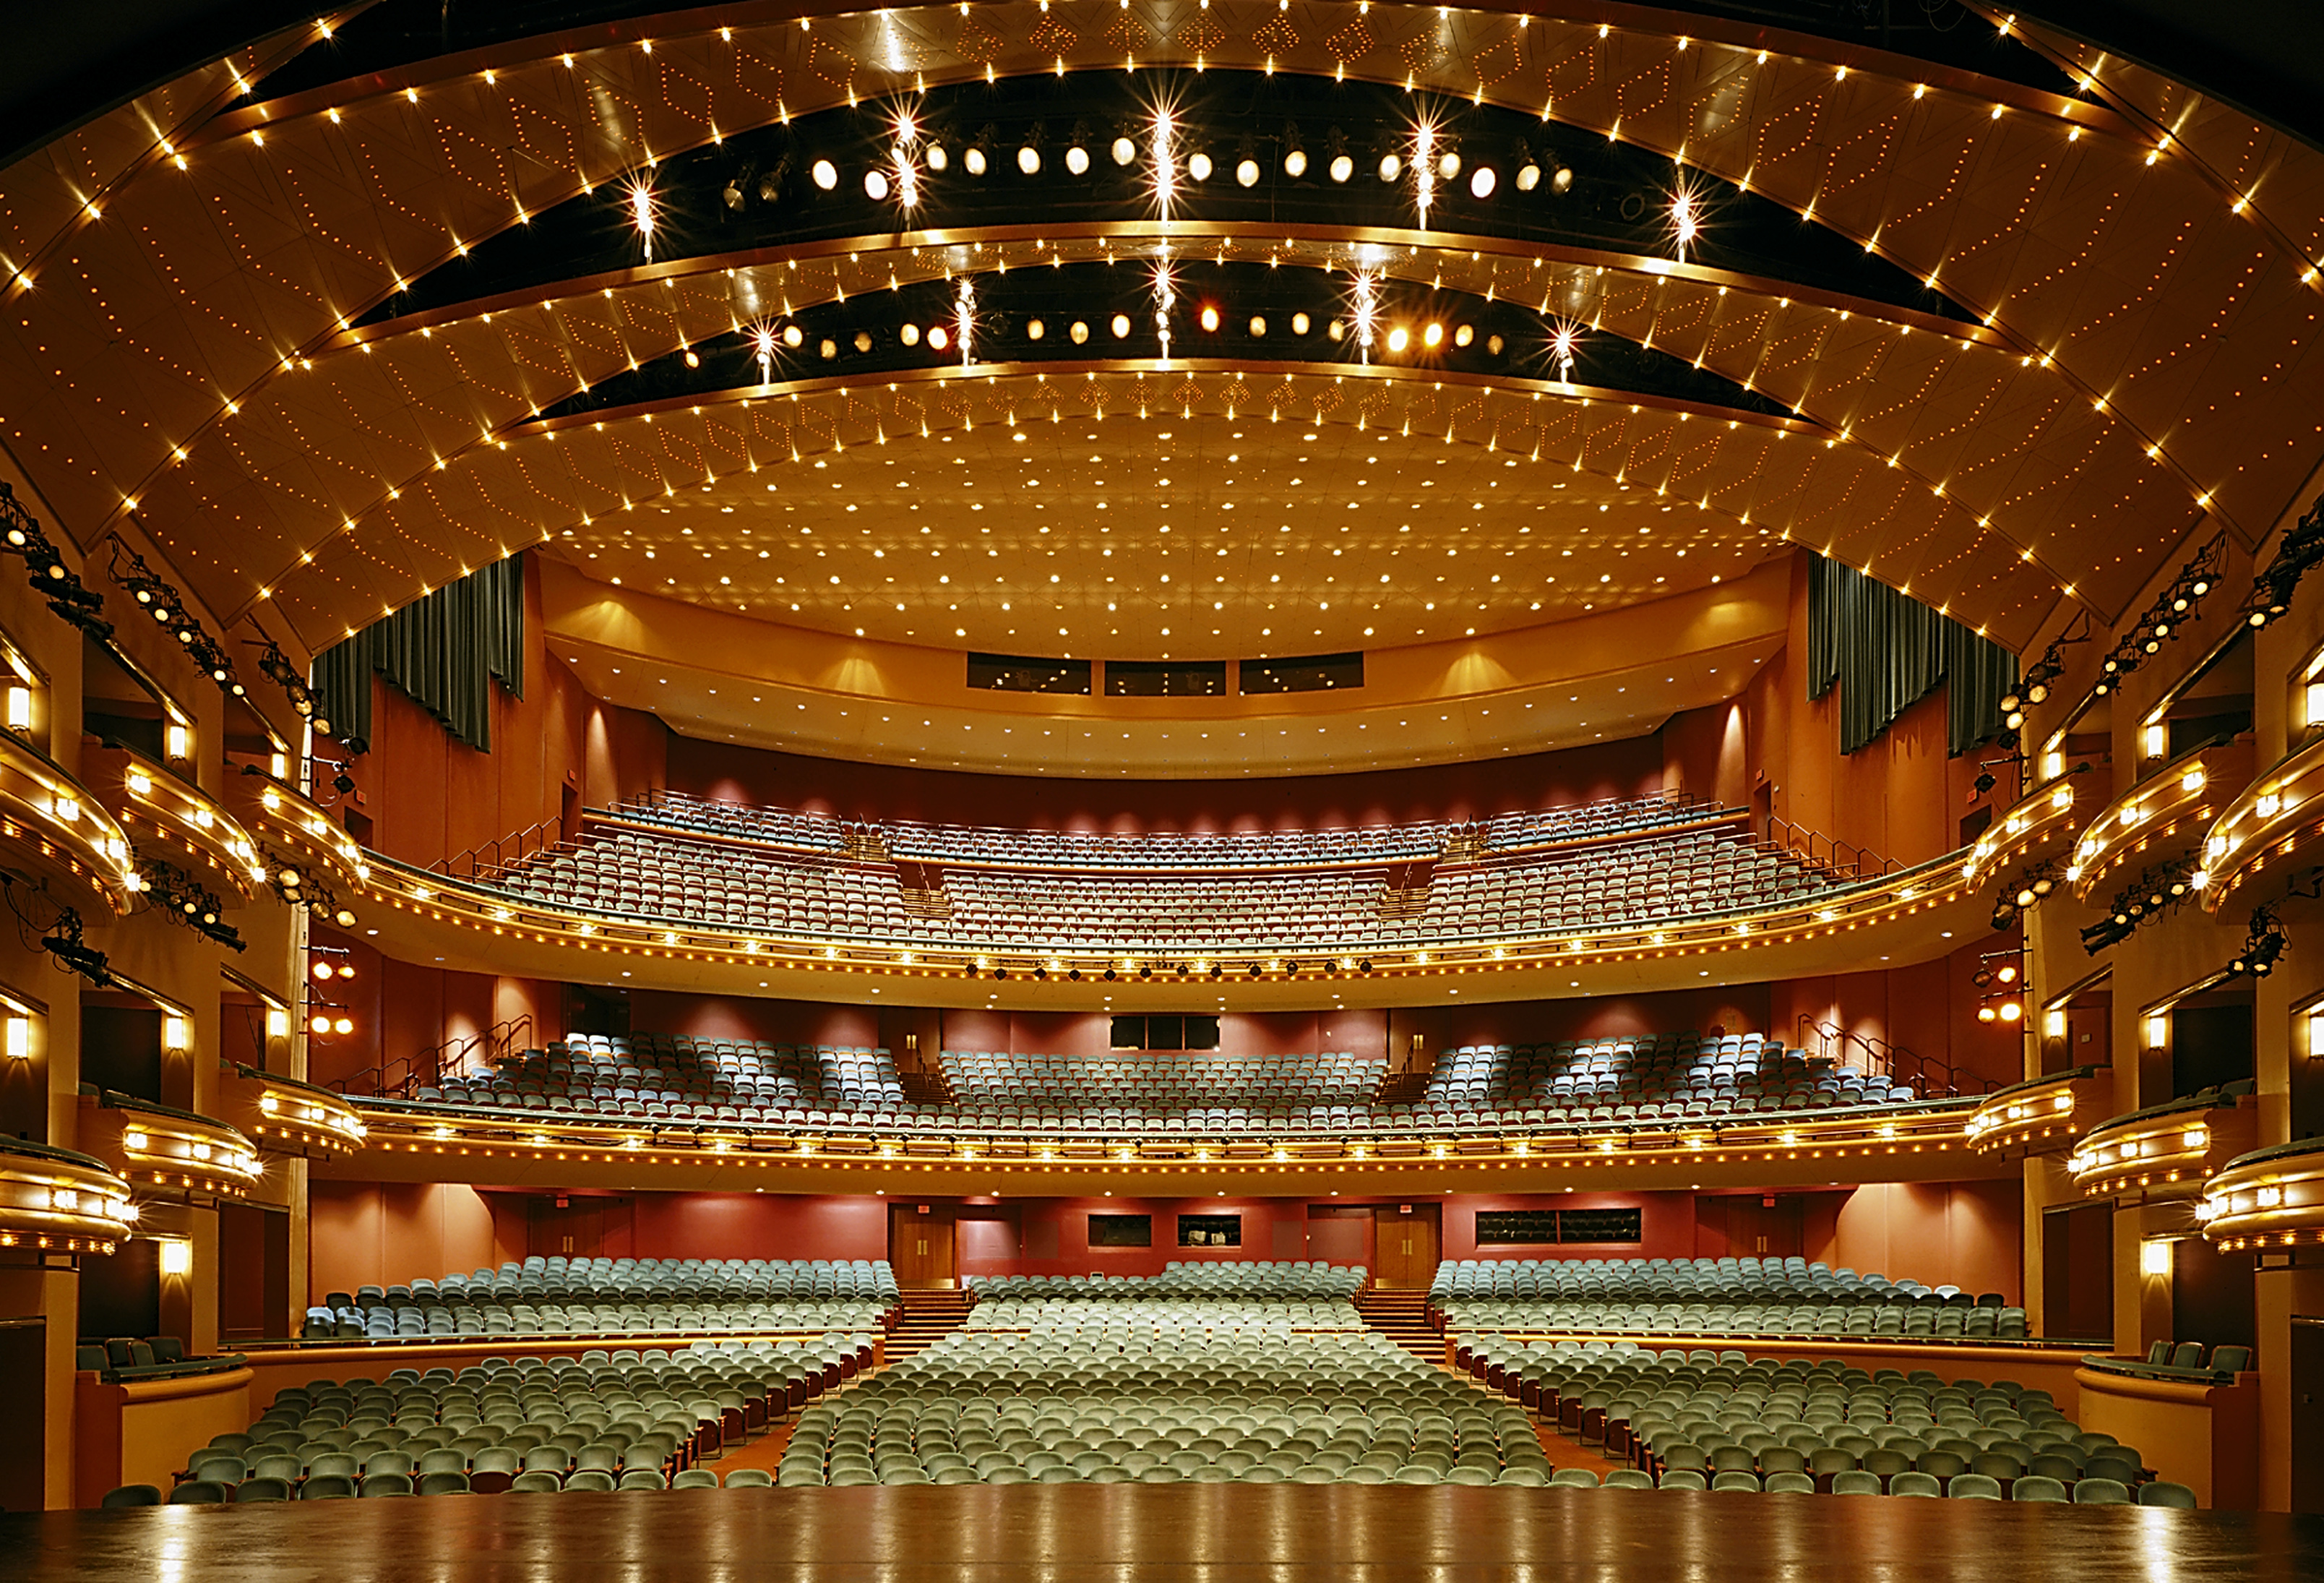 Interior of Aronoff Center seating